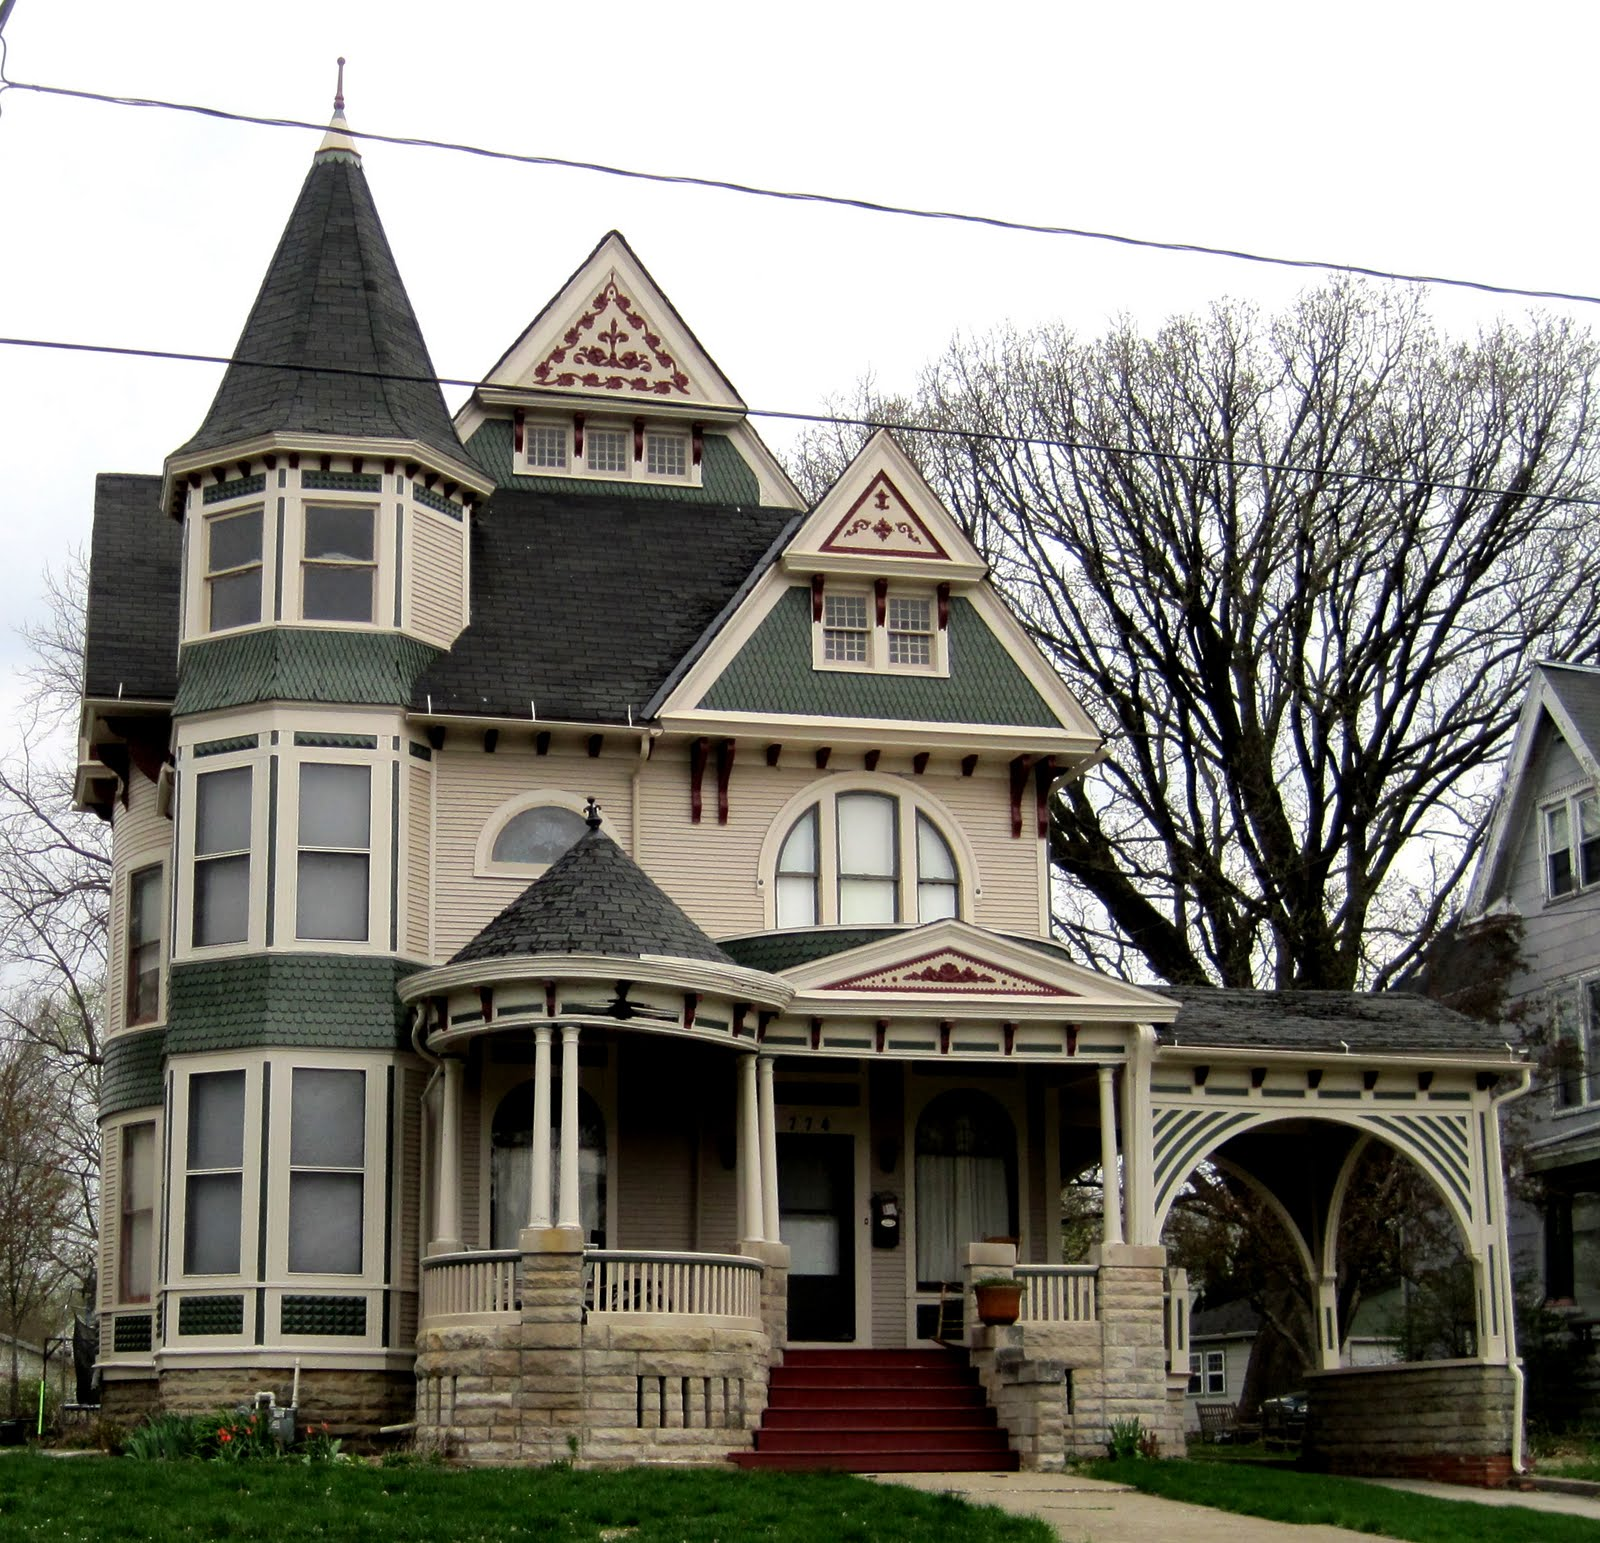 victorian_house_-_victorian_homes_a_sentimental_quilter__victorian_daydreaming.jpg